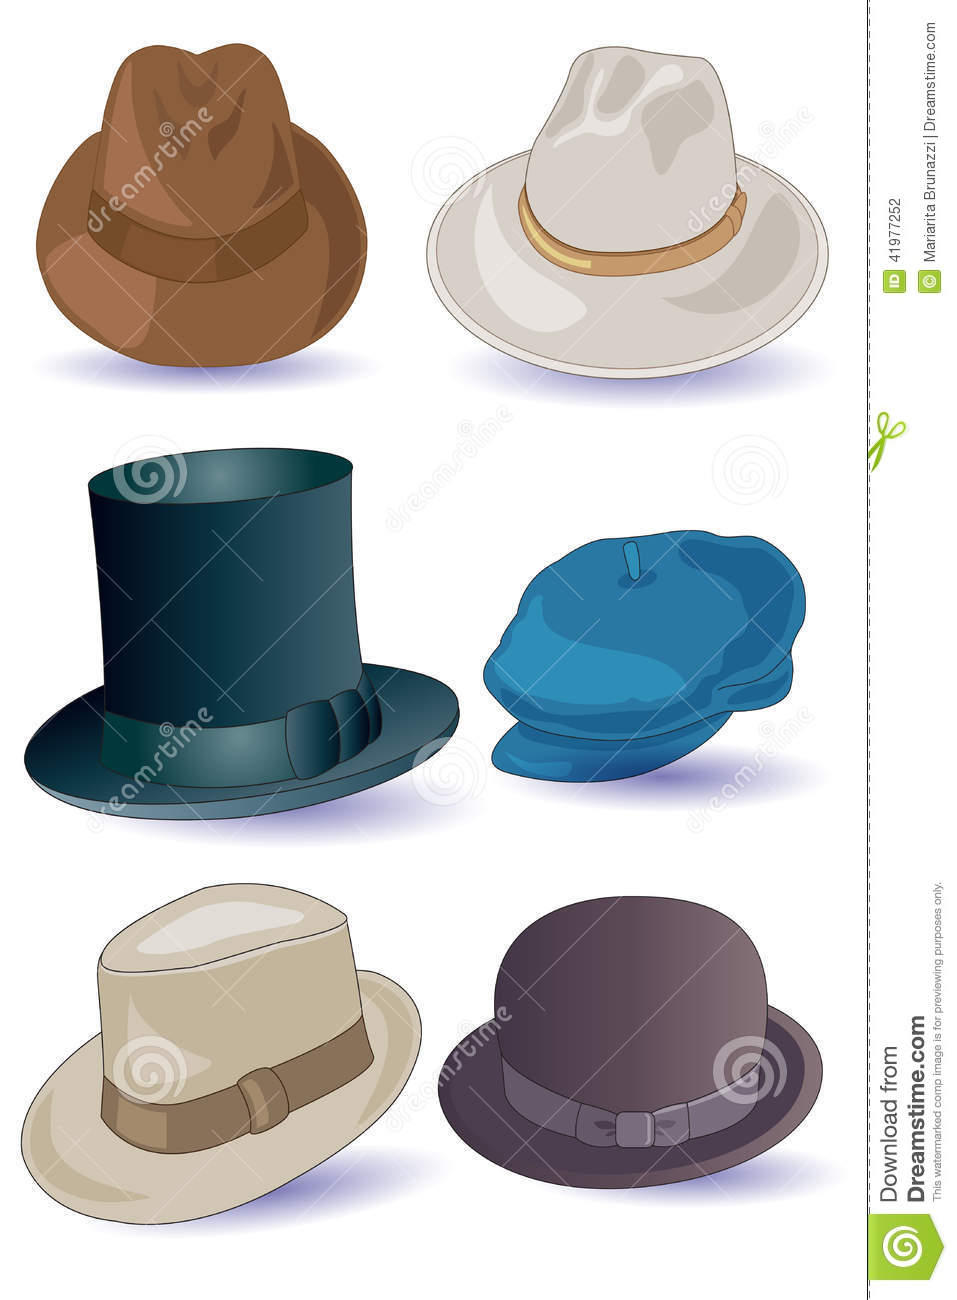 Hats for Men stock vector. Illustration of rodeo e6da695200e3